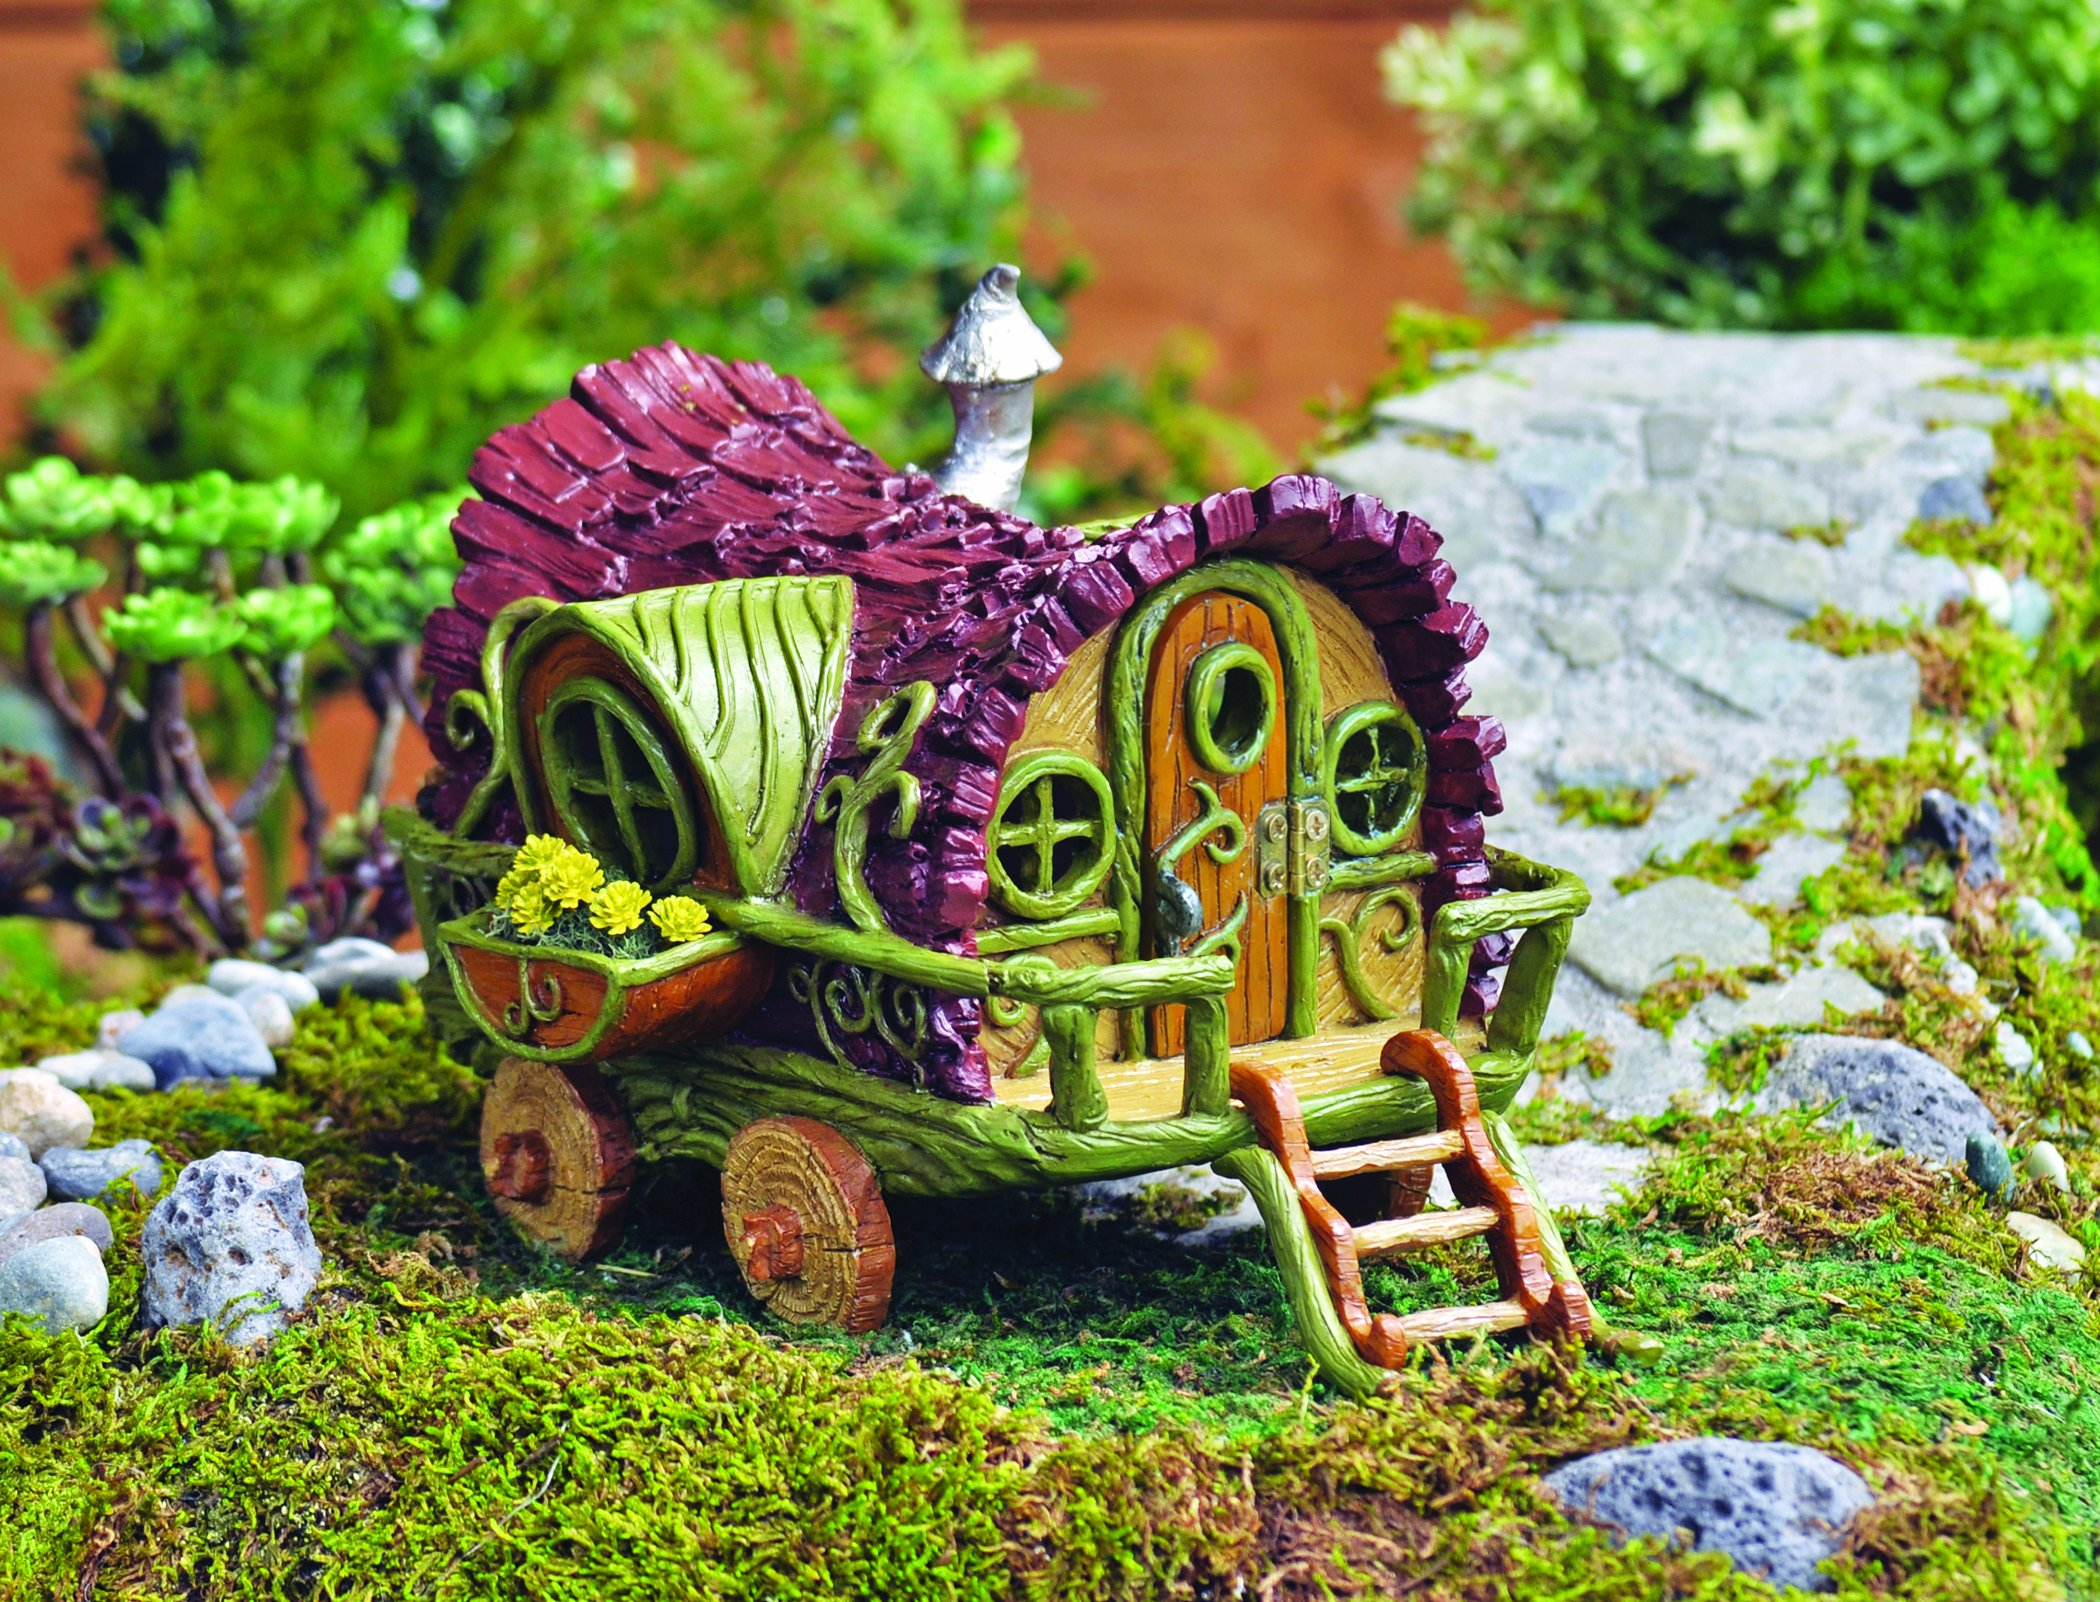 Exceptional Georgetown Home And Garden Fairy #25 - Georgetown Home Garden Fairy Garden Gypsy Wagon